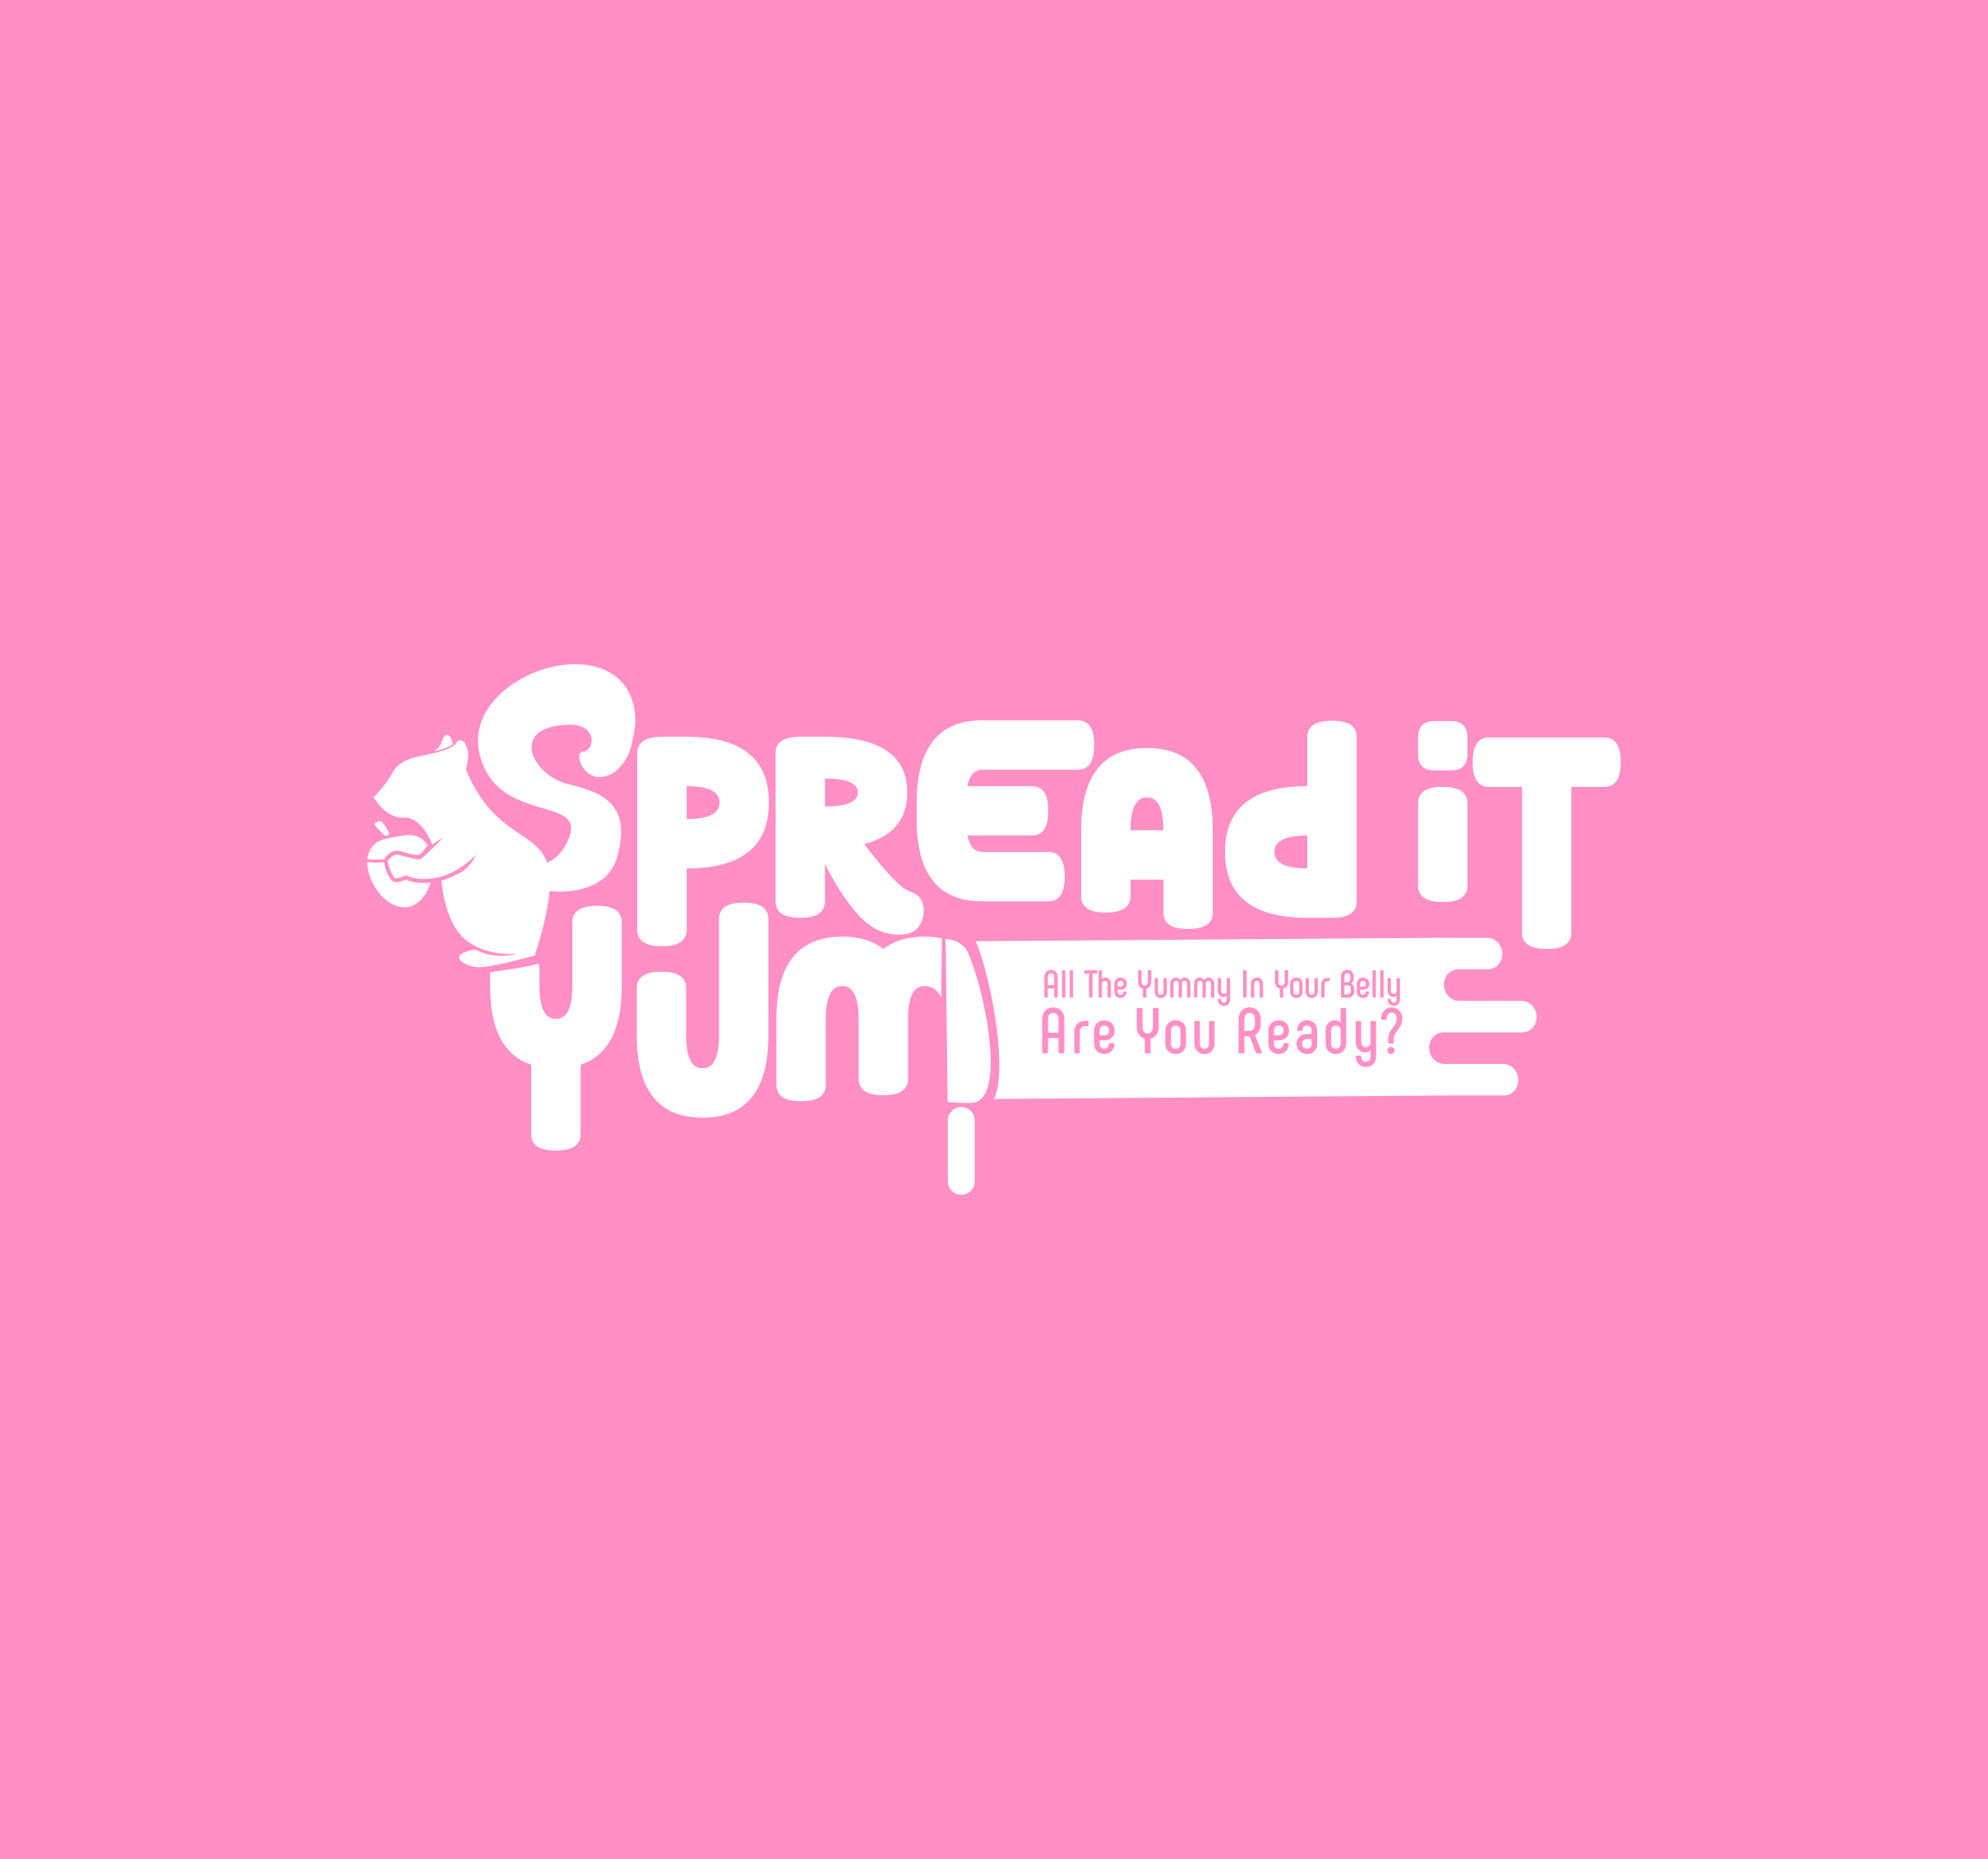 SpreaditYum wants a logo that is unique and fun to look at